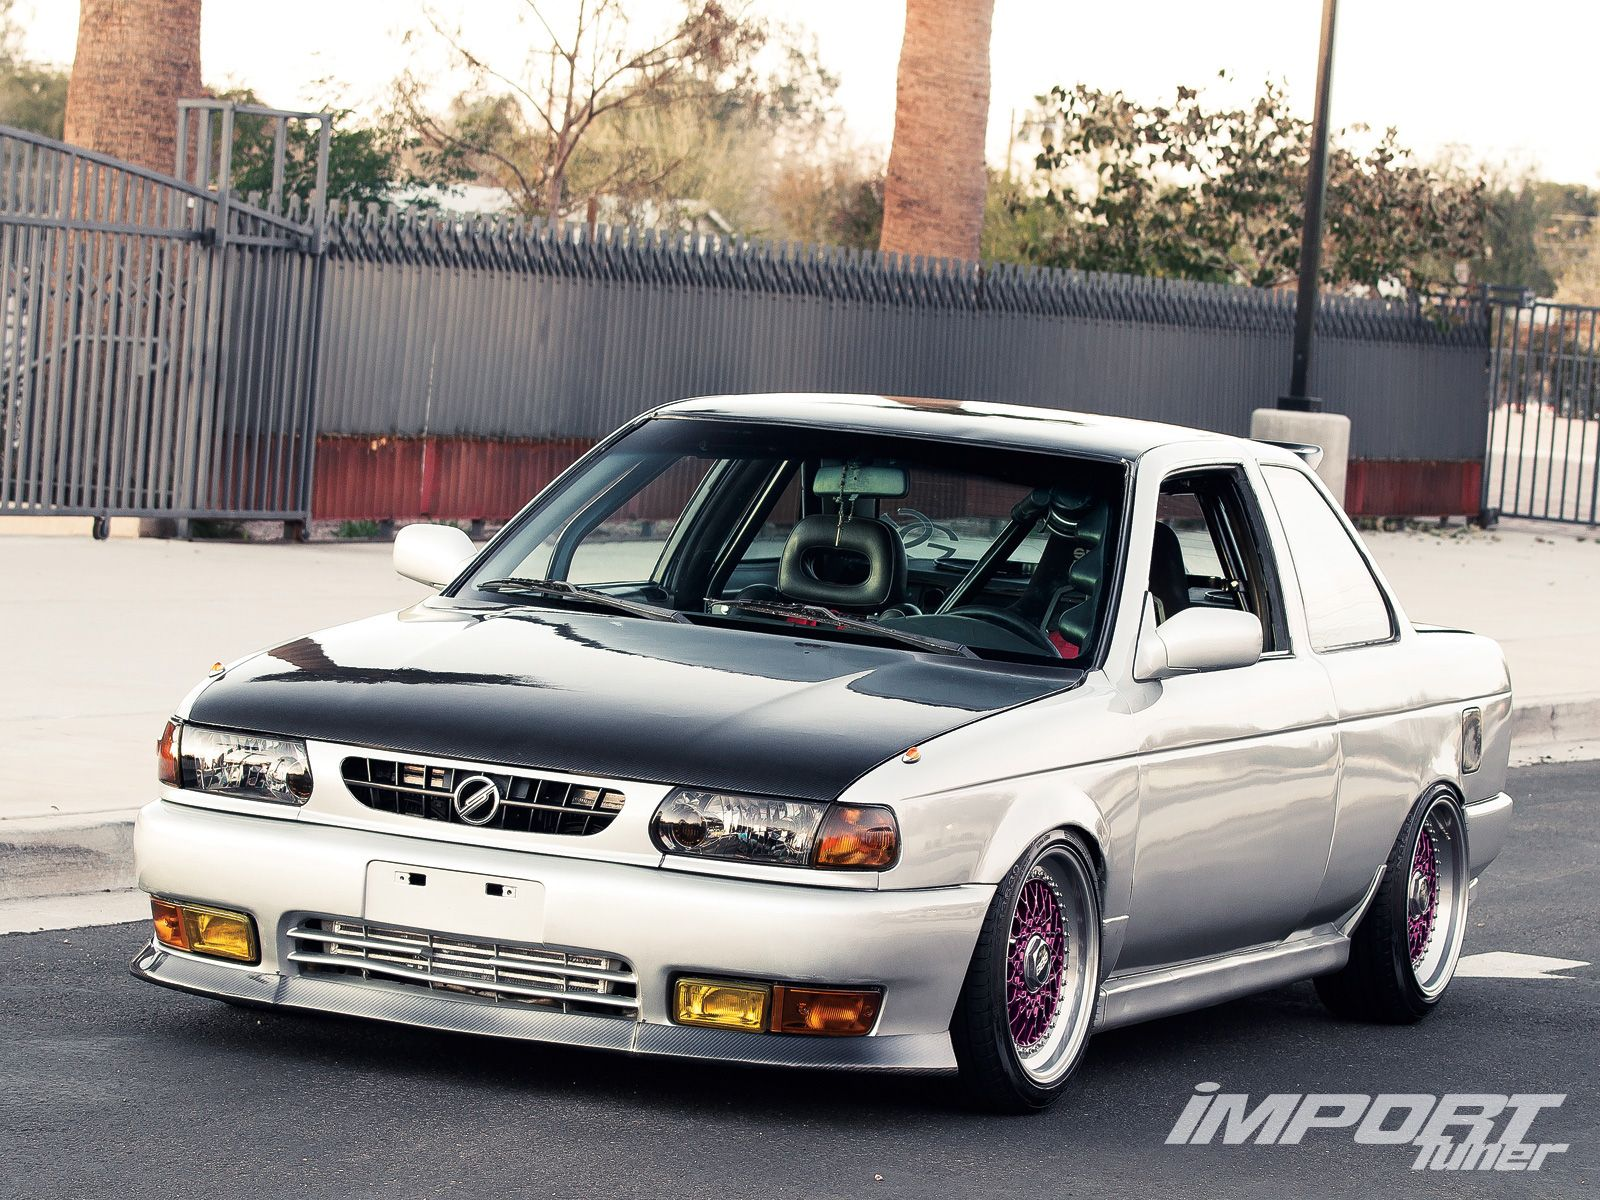 Deportivos Nissan Tuning: 1992 Nissan Sentra XE-labor Of Life